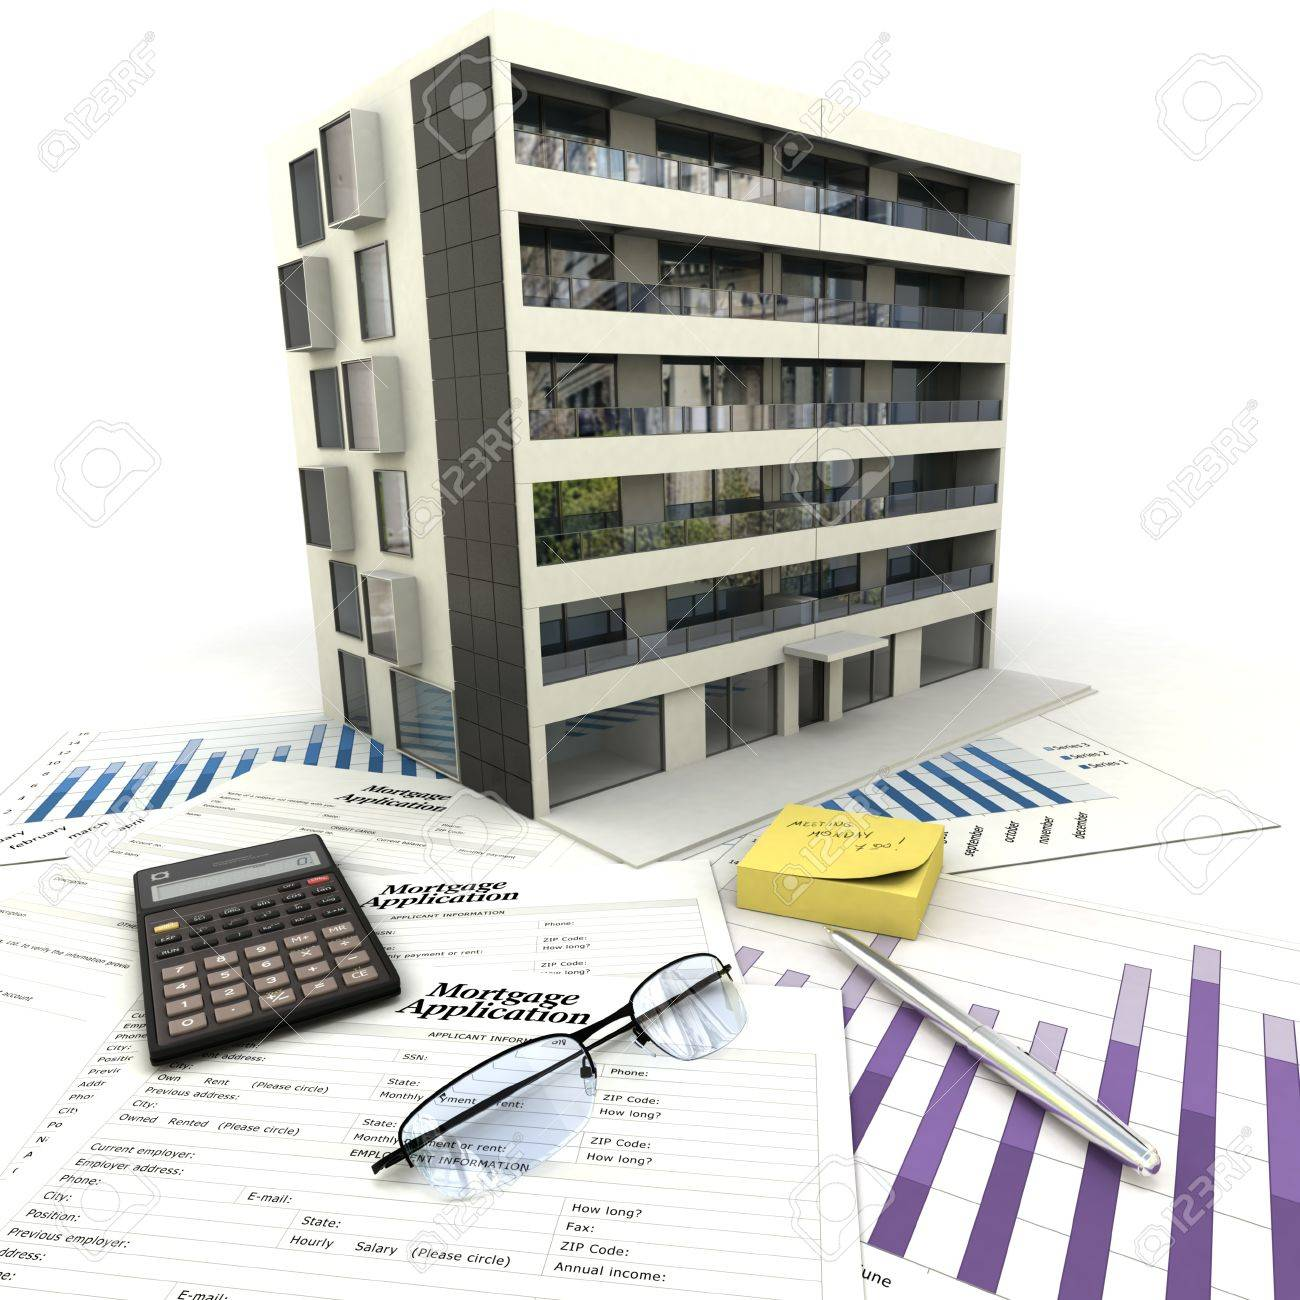 Apartment building on top of a table with mortgage application form, calculator, blueprints, etc.. Stock Photo - 16393341